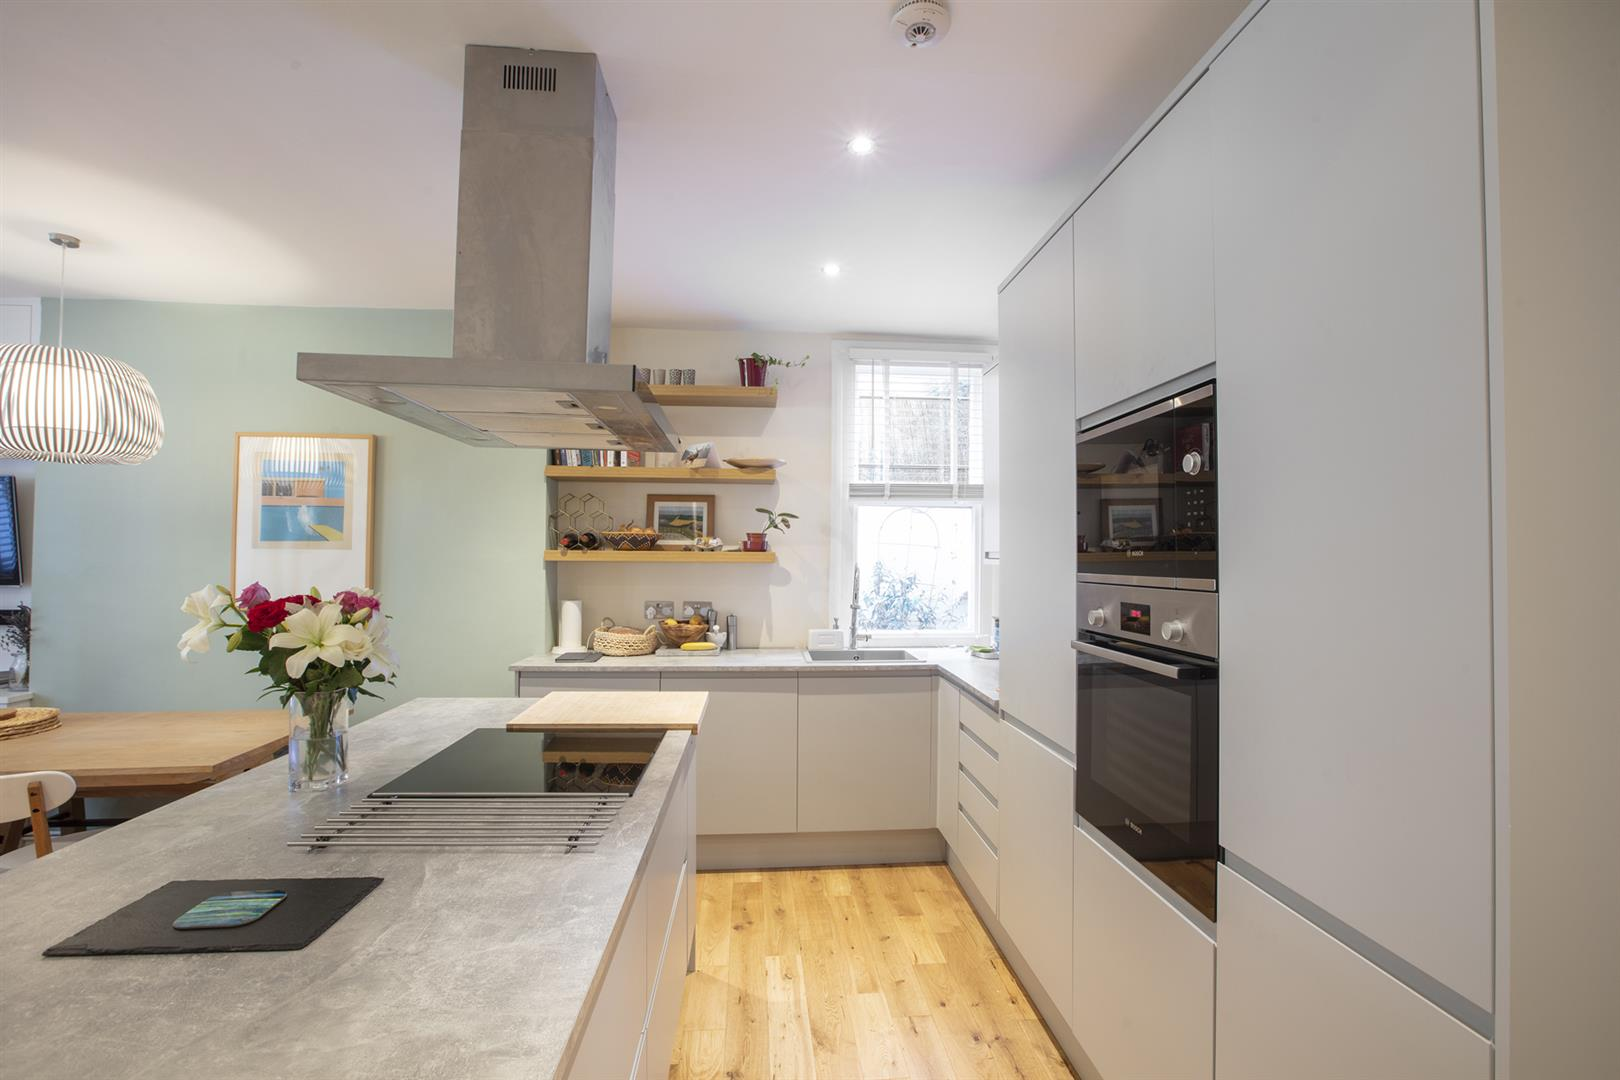 Flat - Conversion For Sale in Crystal Palace Park Road, Sydenham, SE26 698 view9